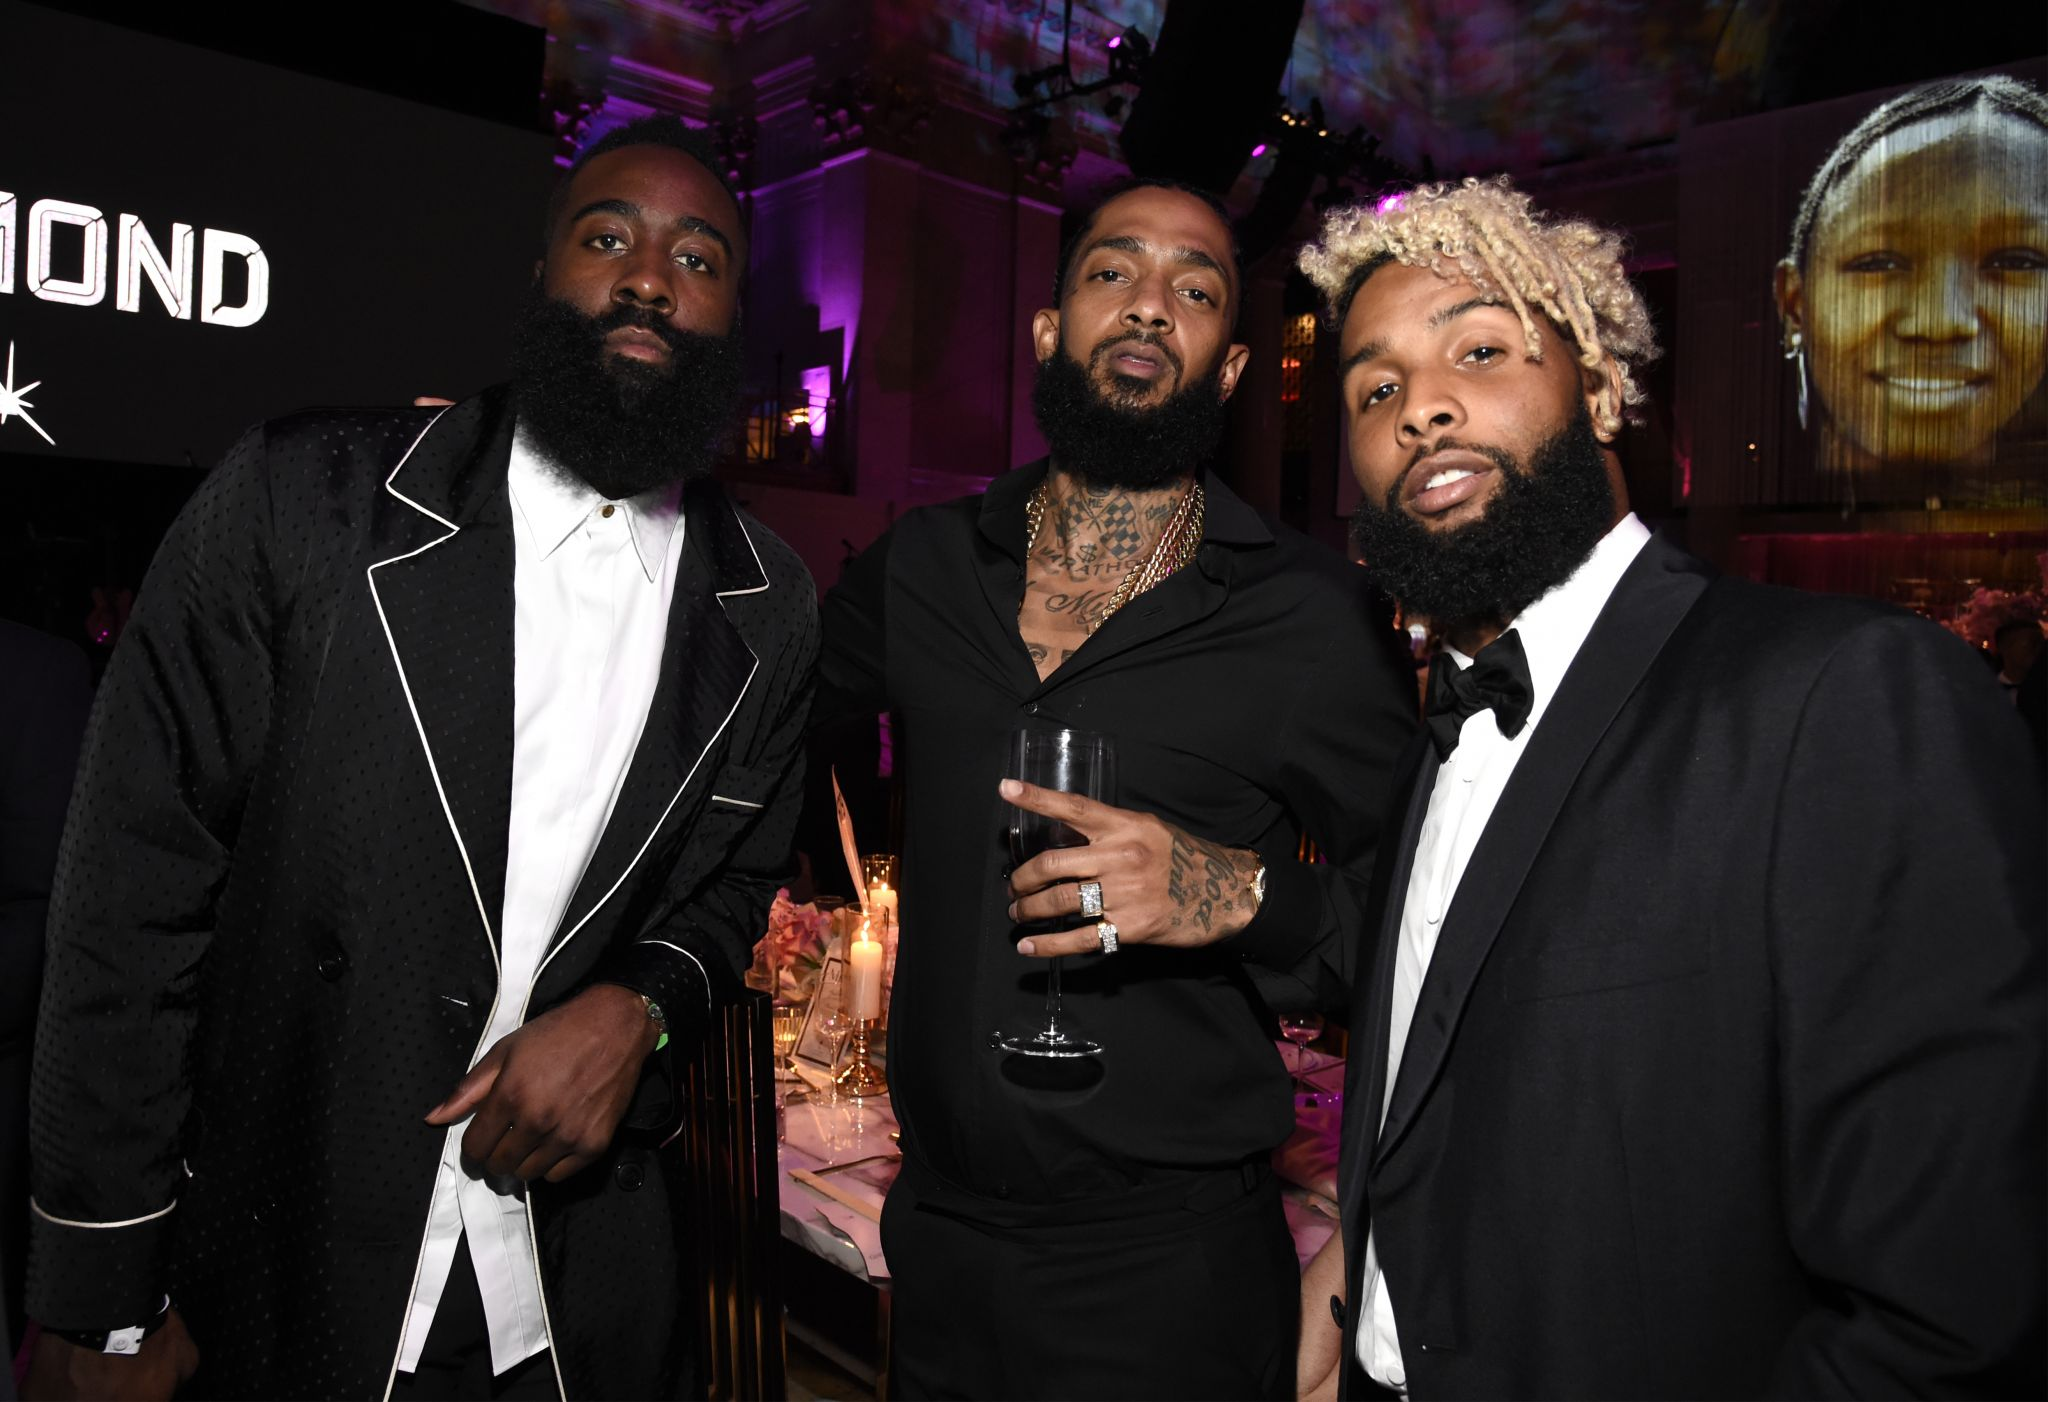 James Harden, Houston rappers mourn the loss of Nipsey Hussle